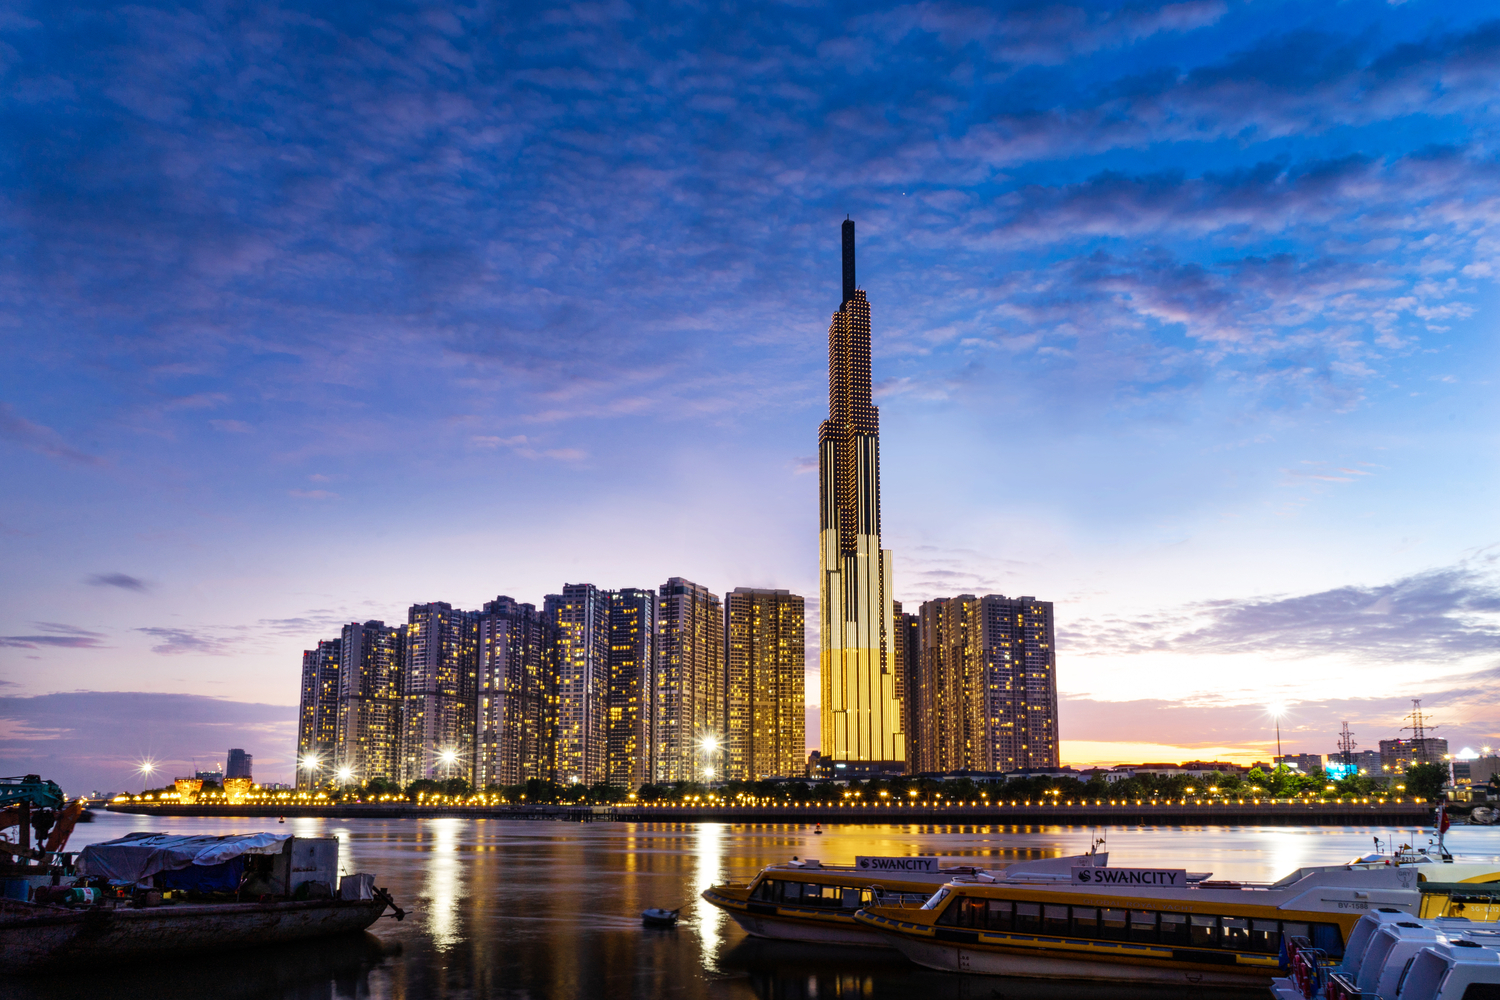 These Are the World's 25 Tallest Buildings,Vincom Landmark 81. Image © ngoc tran / Shutterstock